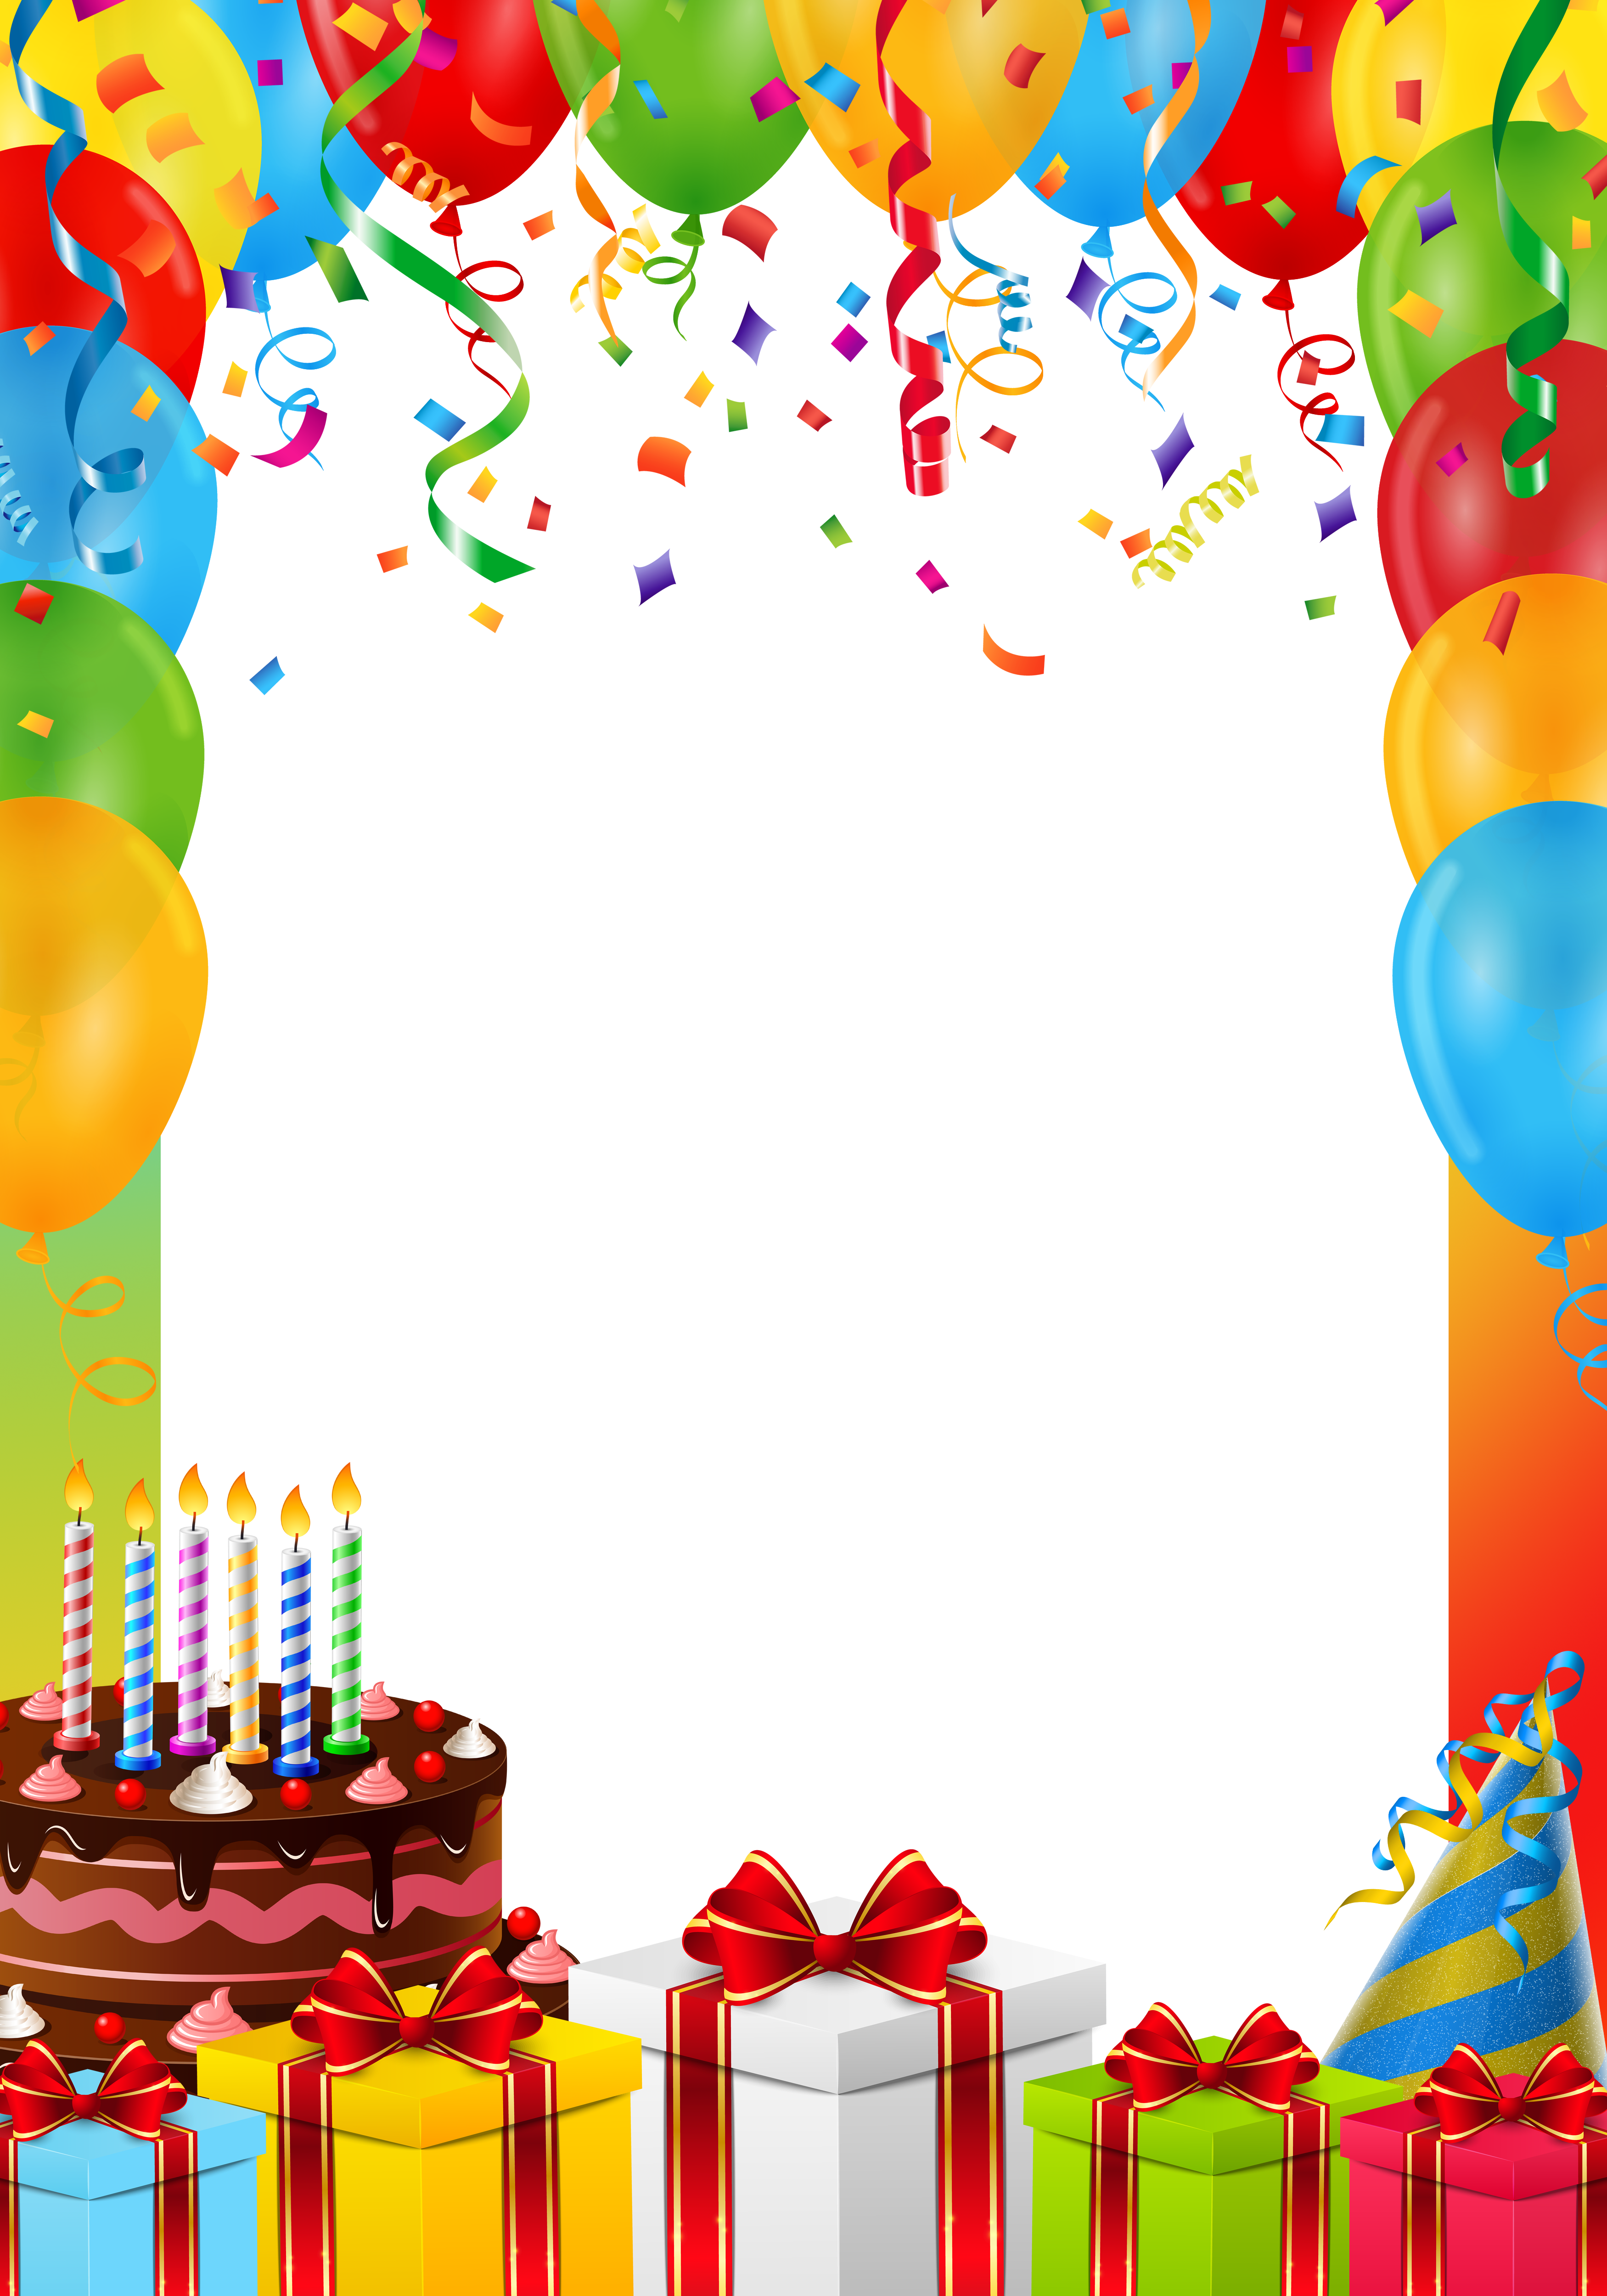 birthday frame png transparent image  gallery